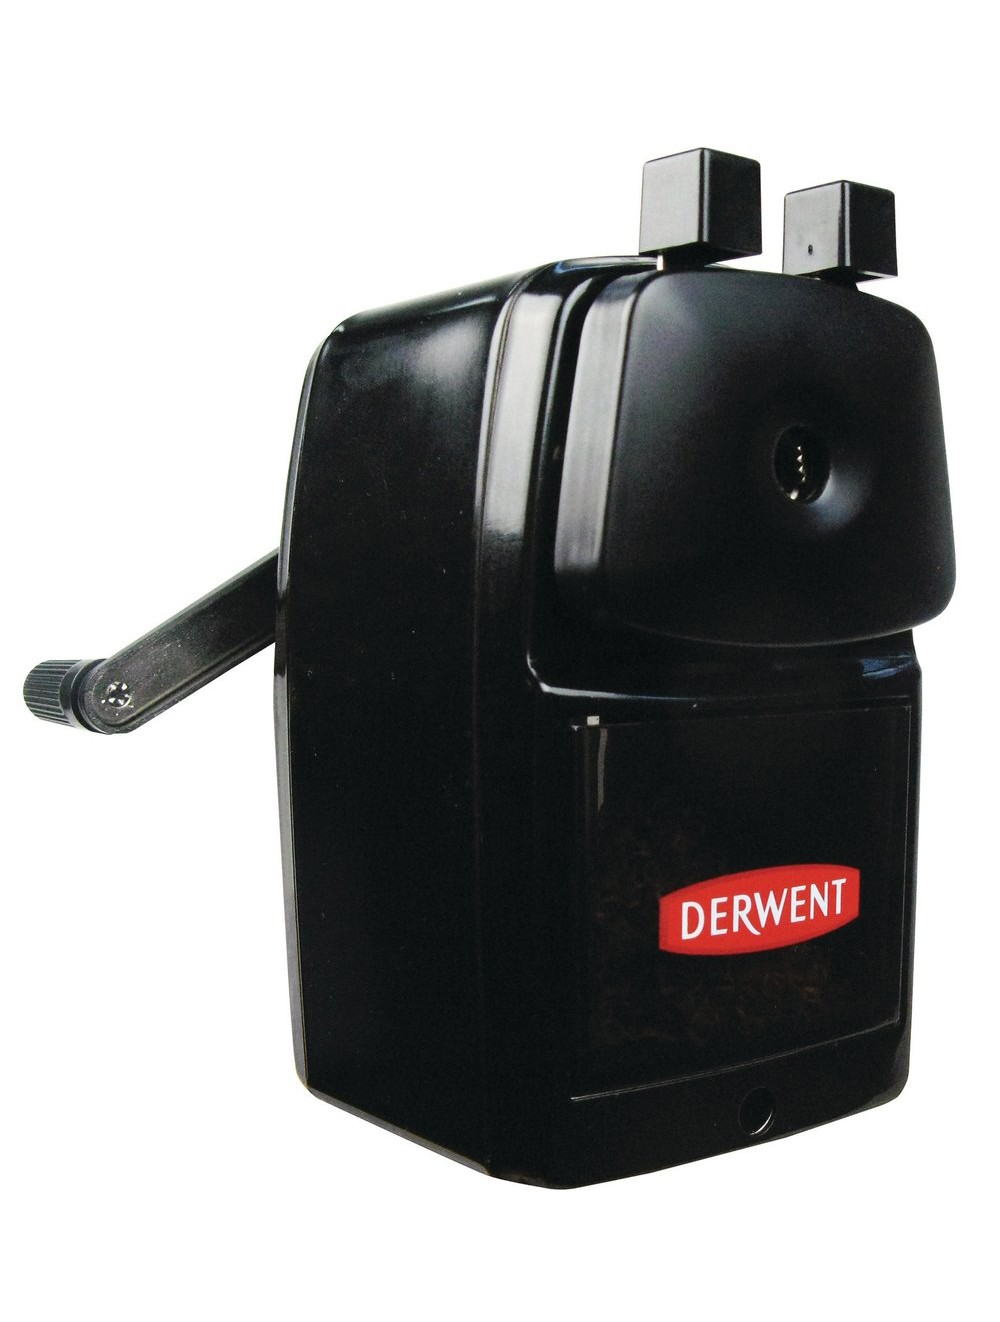 DERWENT SUPER POINT MANUAL DESK SHARPENER